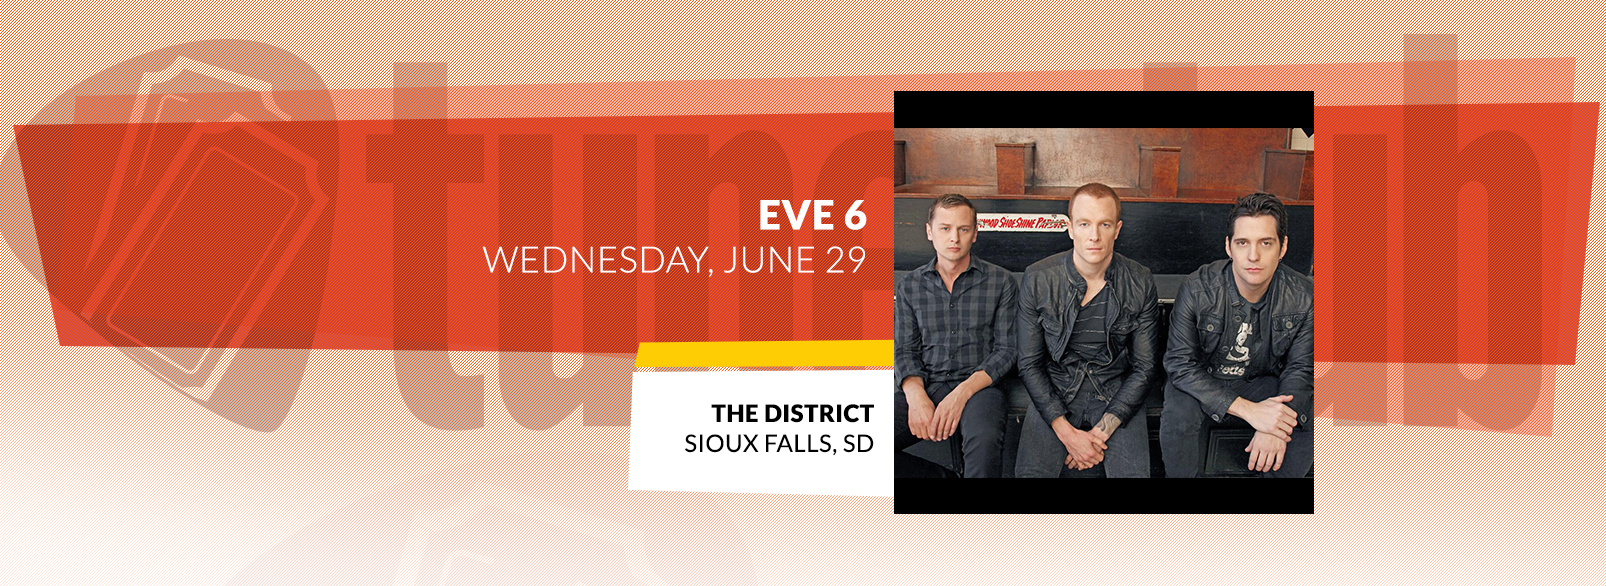 Eve 6 @ The District